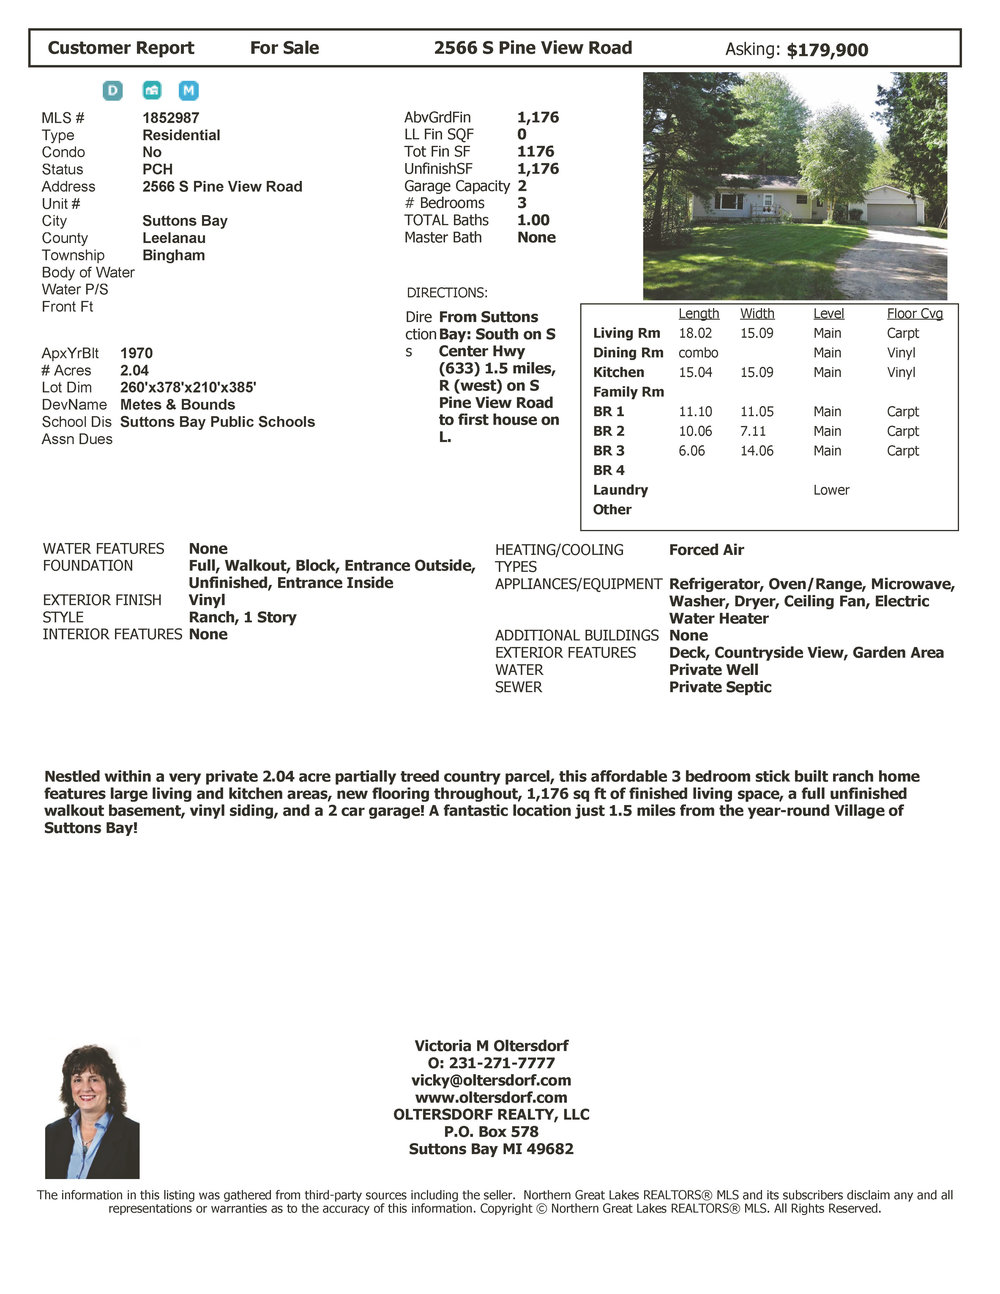 2566 S Pine View Road, Suttons Bay - For Sale by Oltersdorf Realty LLC (price change).jpg